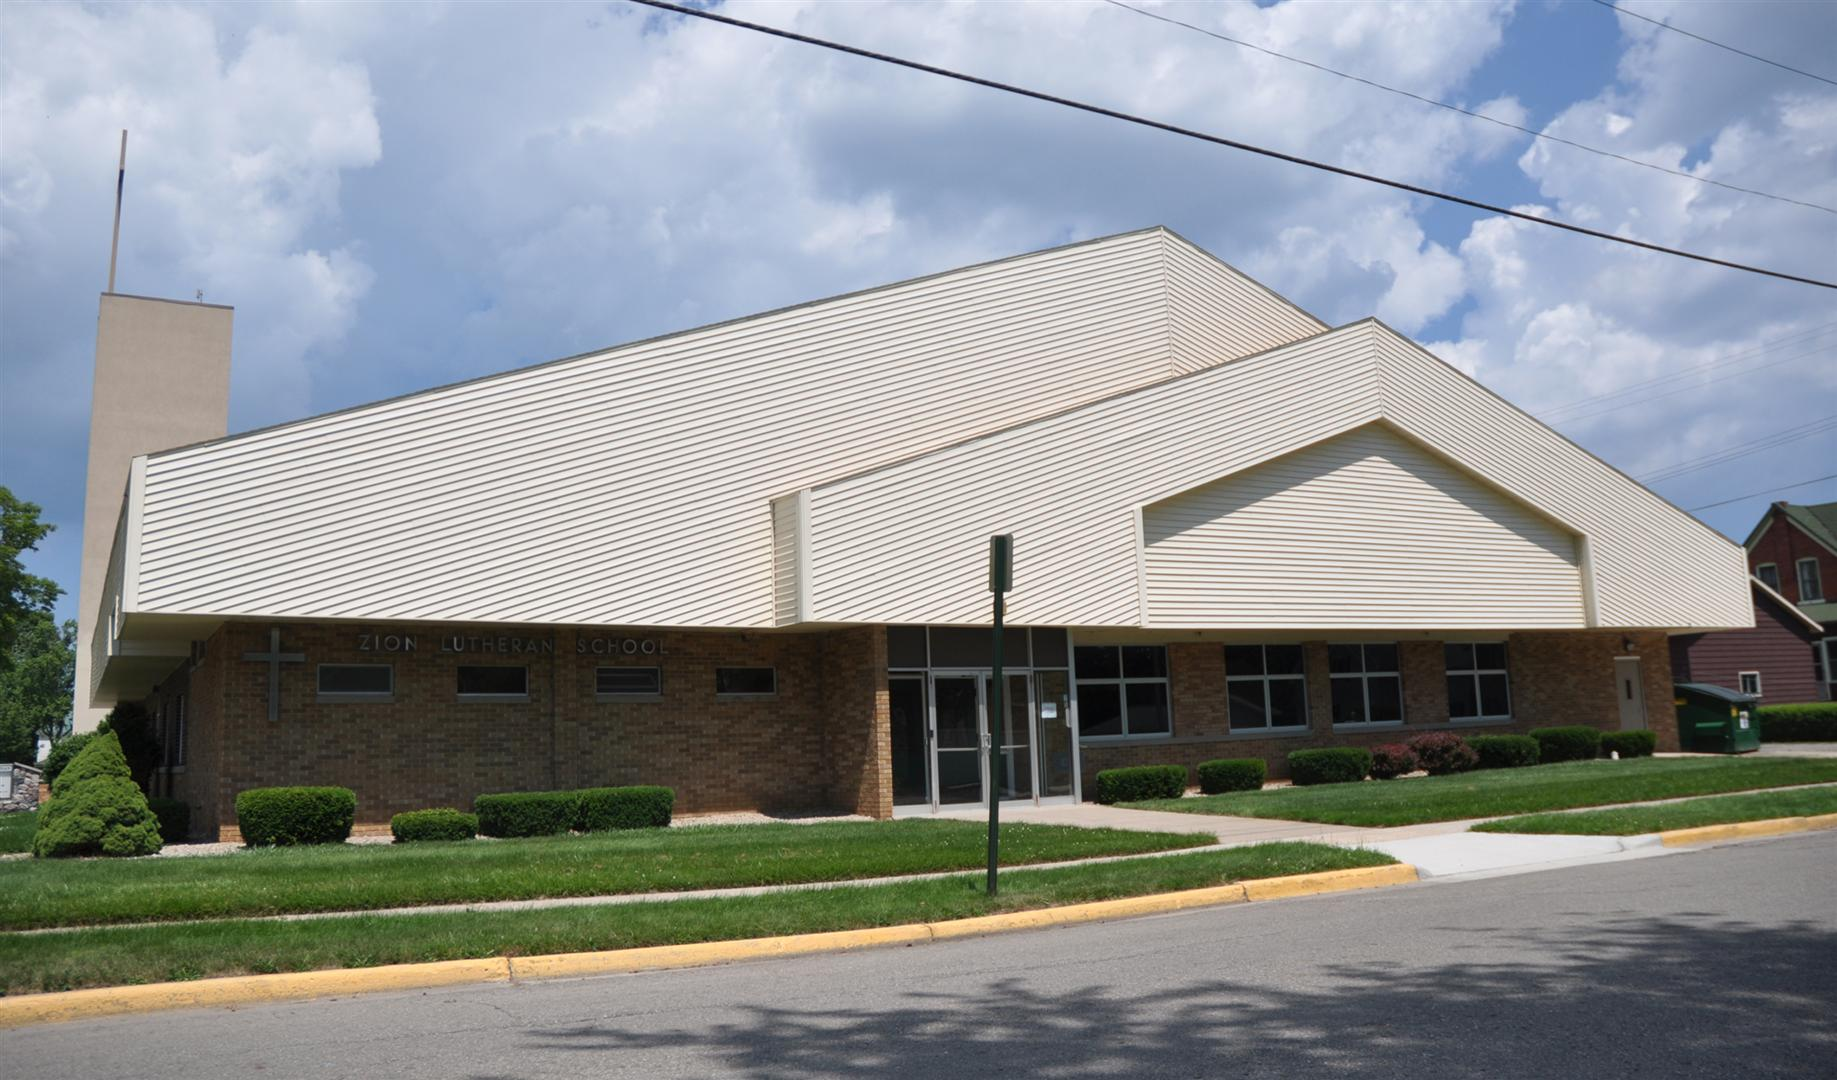 Picture of Zion Lutheran School Building